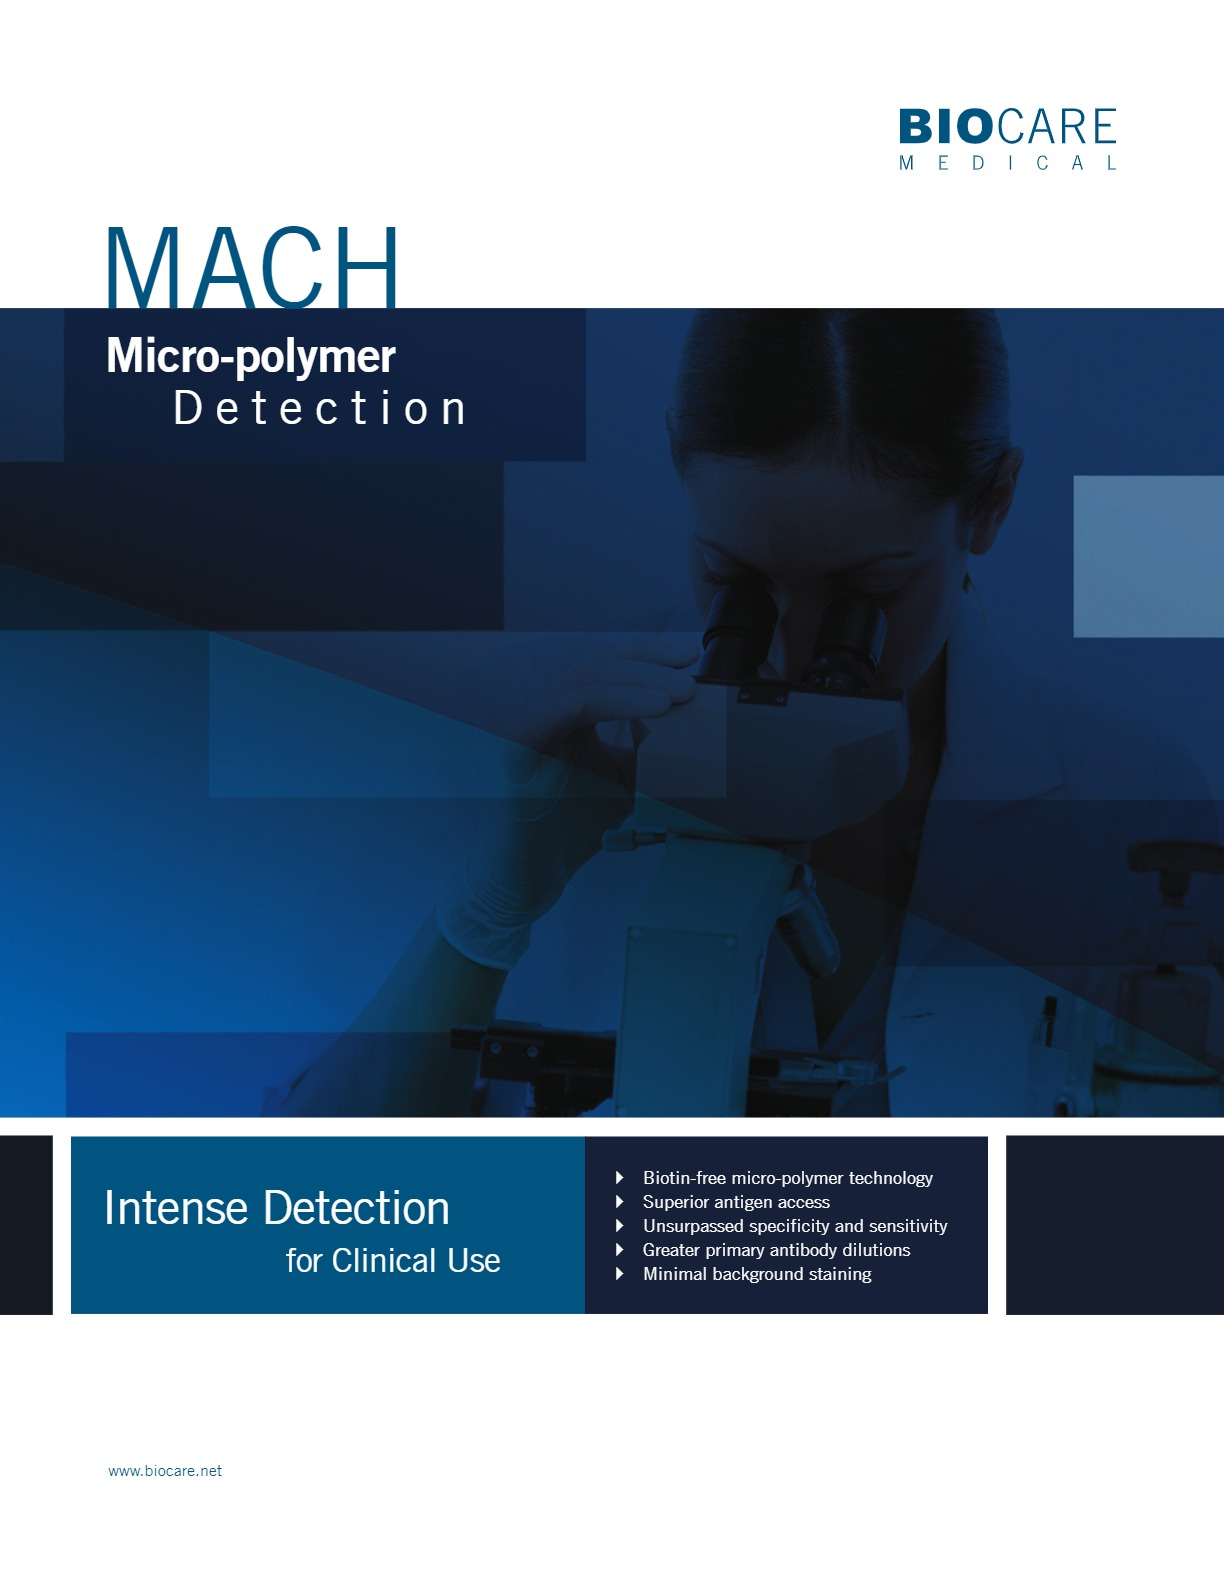 MACH Micro-polymer Detection